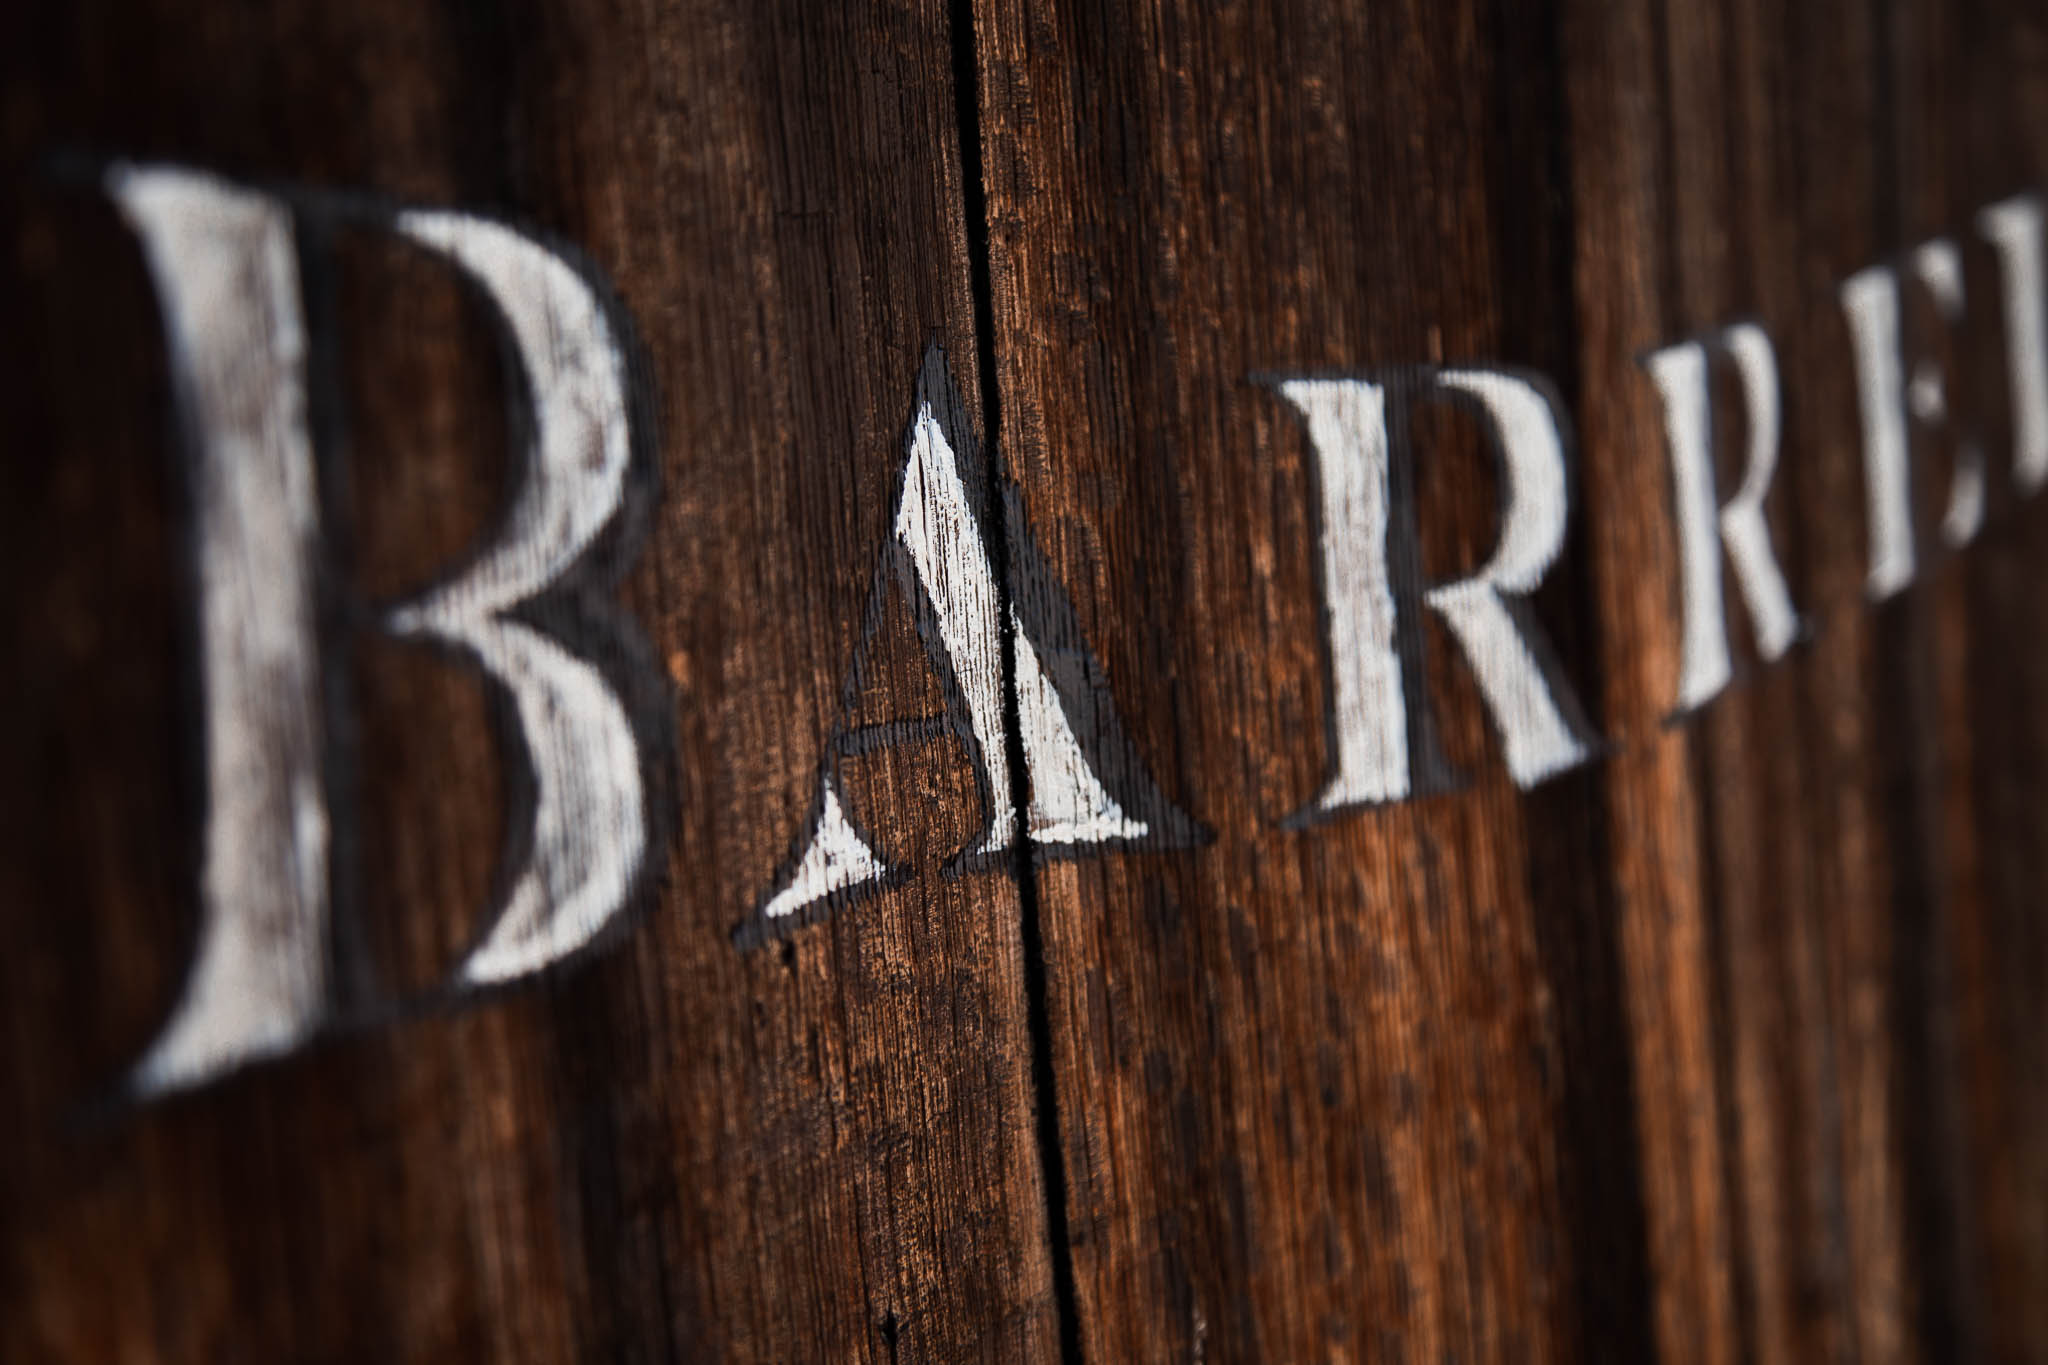 Details of Hand Lettered Signage hand painted by Amarie Design Co. for San Diego Winery, Forgotten Barrel